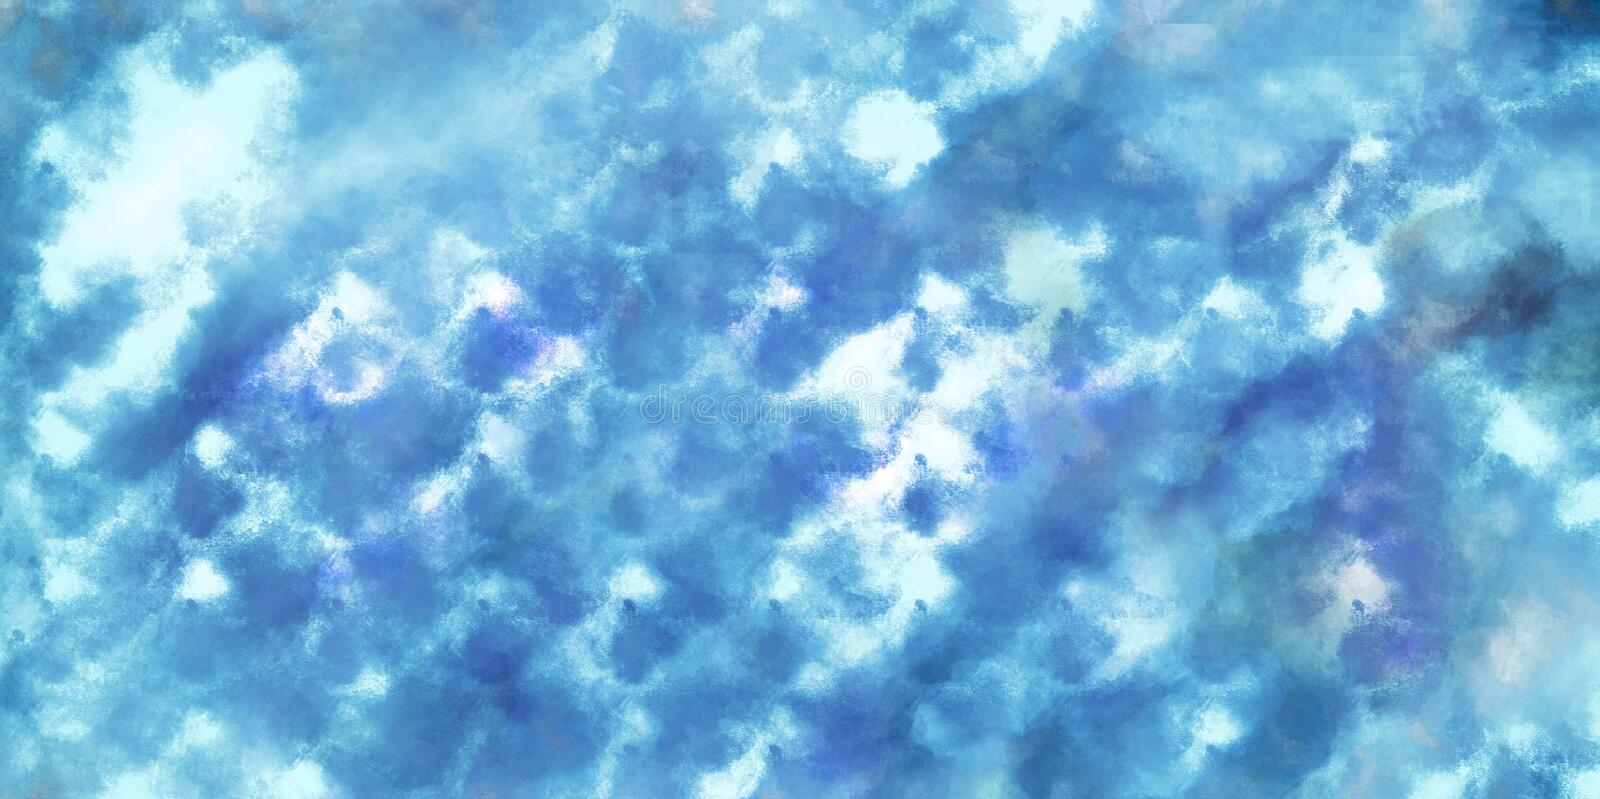 Blue watercolor abstract pattern background. Illustration royalty free stock images